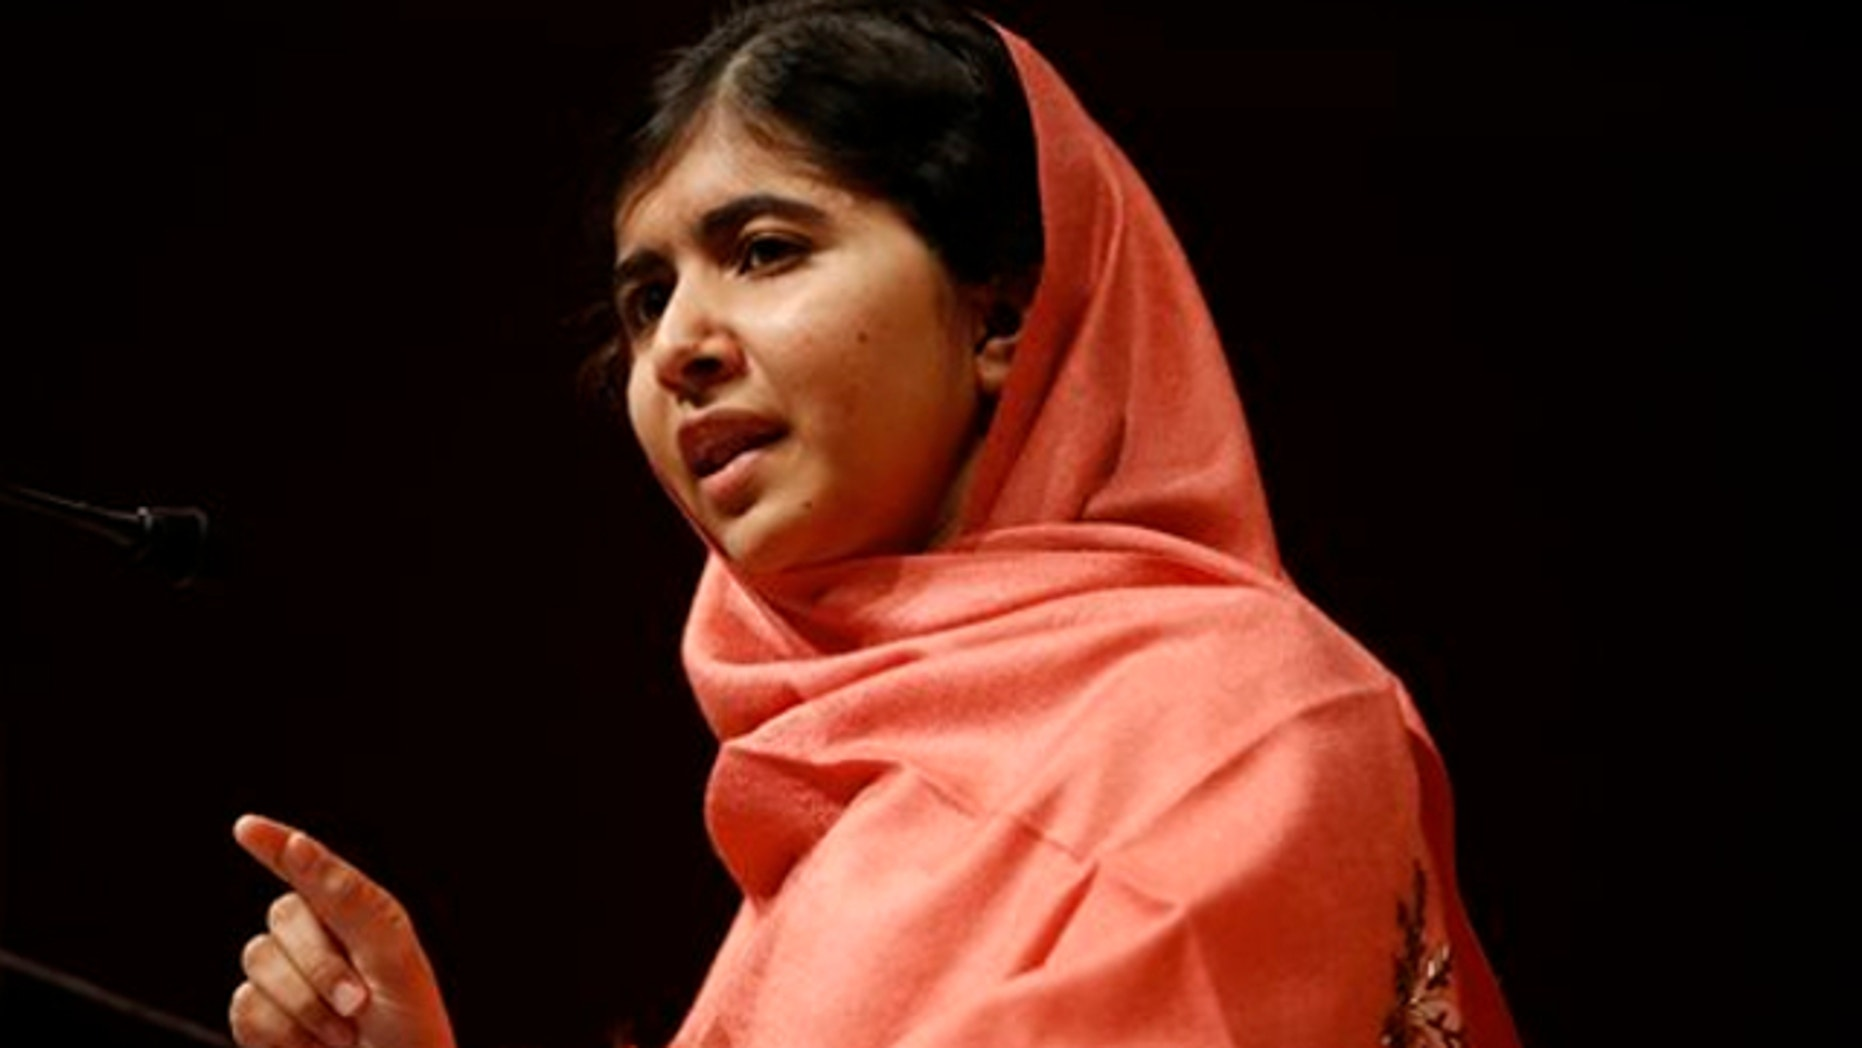 Sept. 27, 2013: Malala Yousafzai addresses students and faculty after receiving the 2013 Peter J. Gomes Humanitarian Award at Harvard University on the school's campus in Cambridge, Mass.